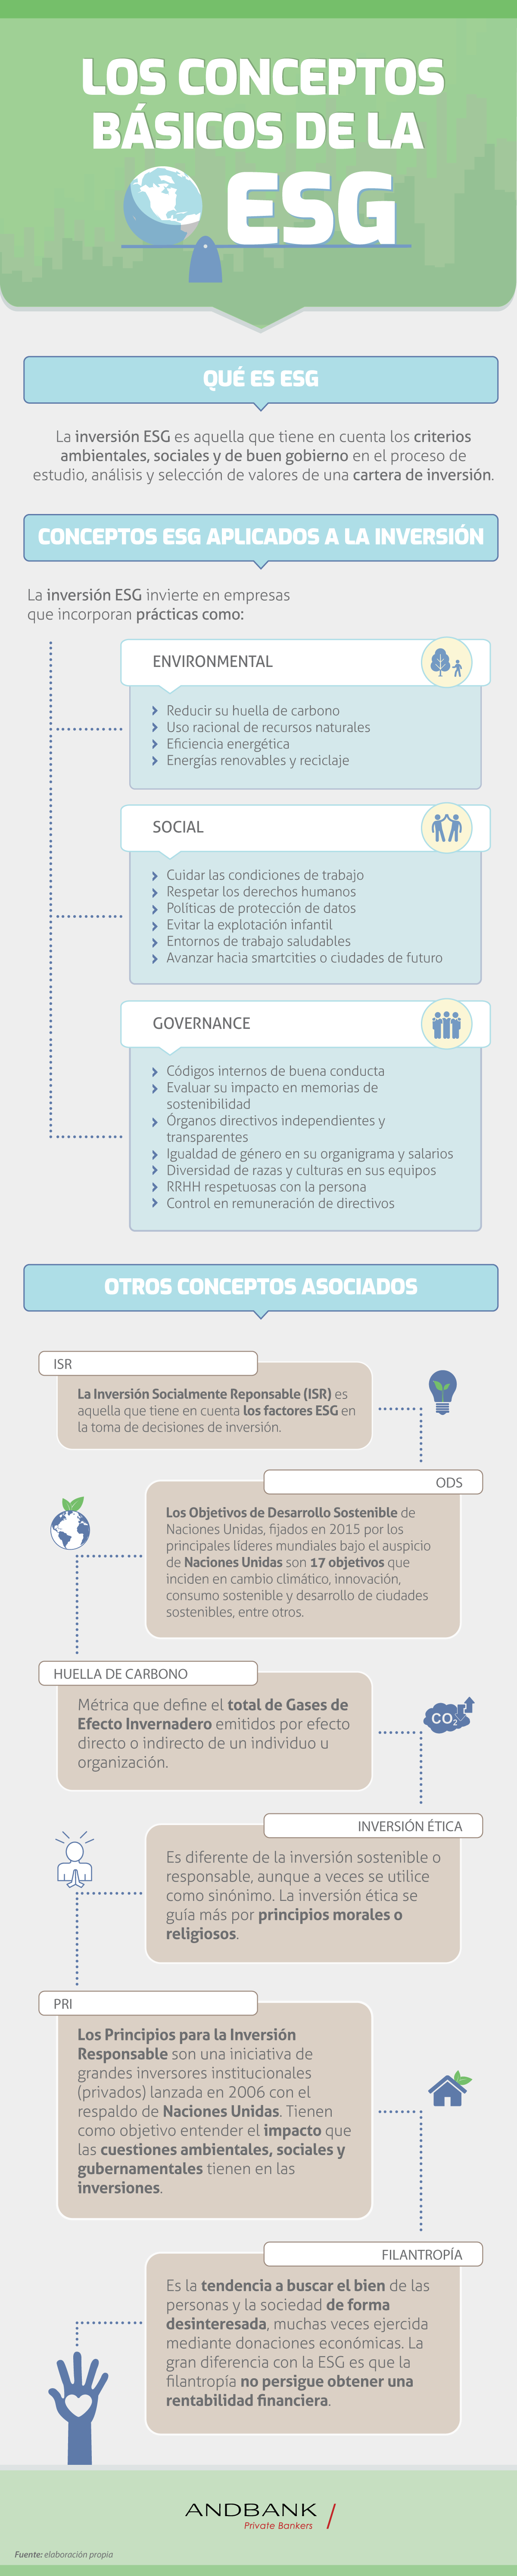 Infografia ESG inversion sostenible